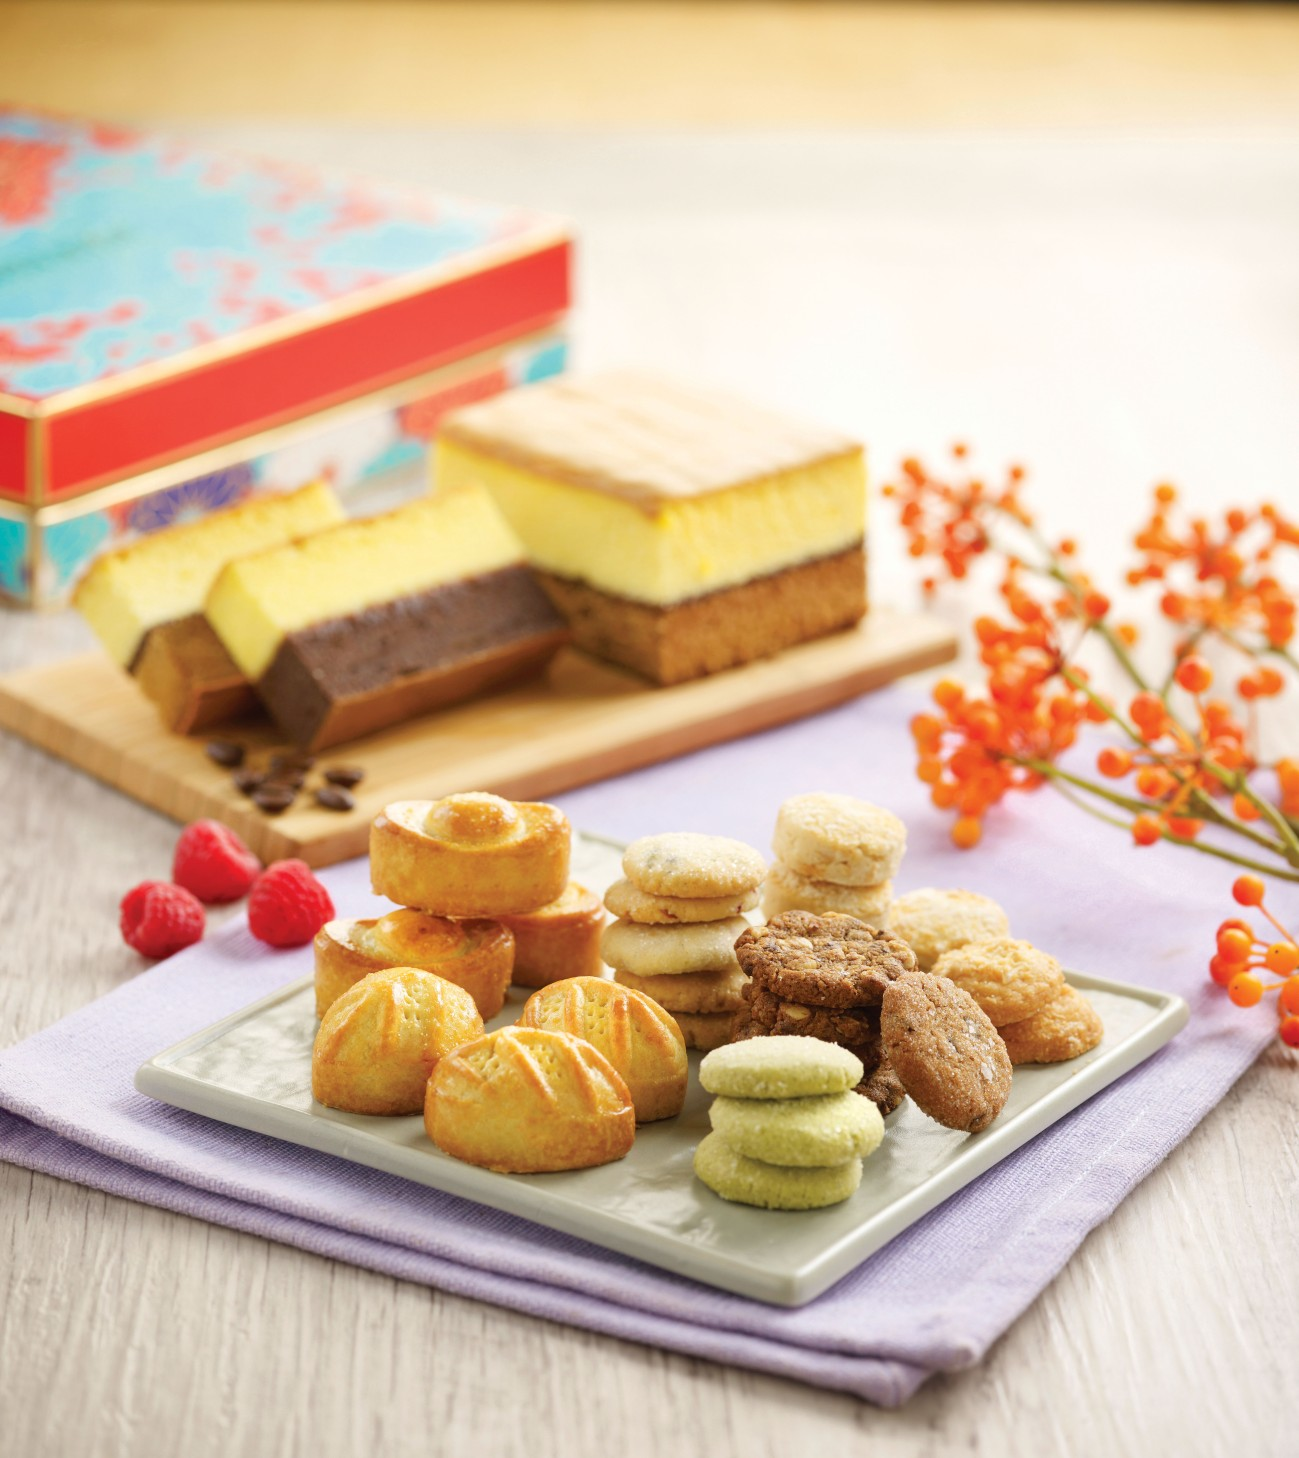 Bakerzin CNY 2016 - Group Visual of all cakes, tarts and cookies